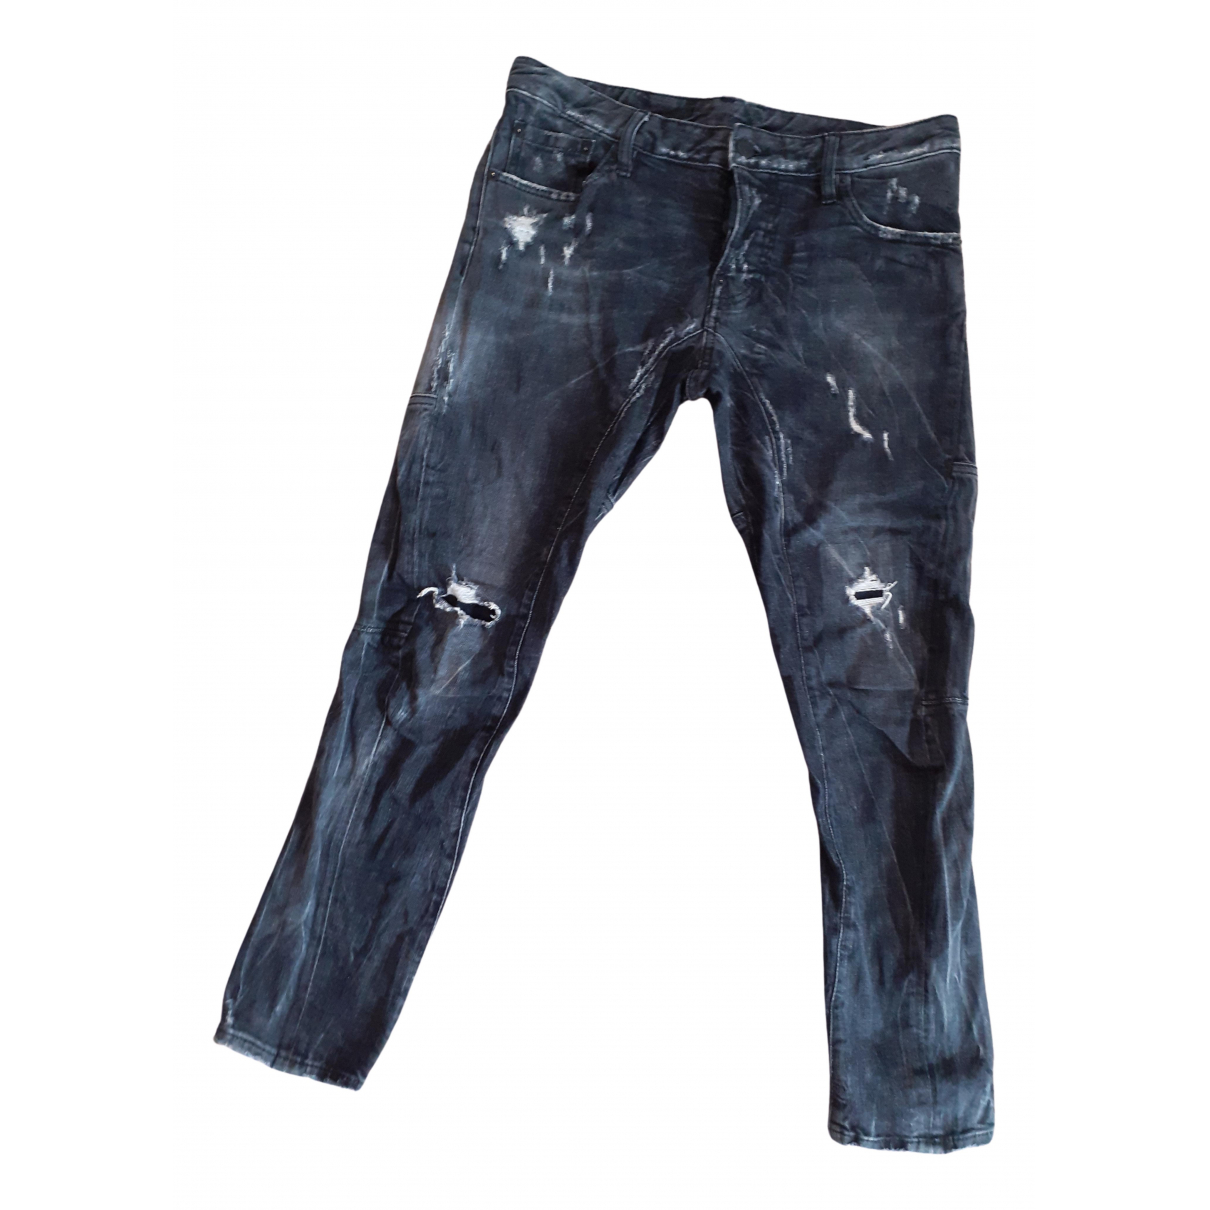 Dsquared2 N Grey Denim - Jeans Jeans for Women 27 US